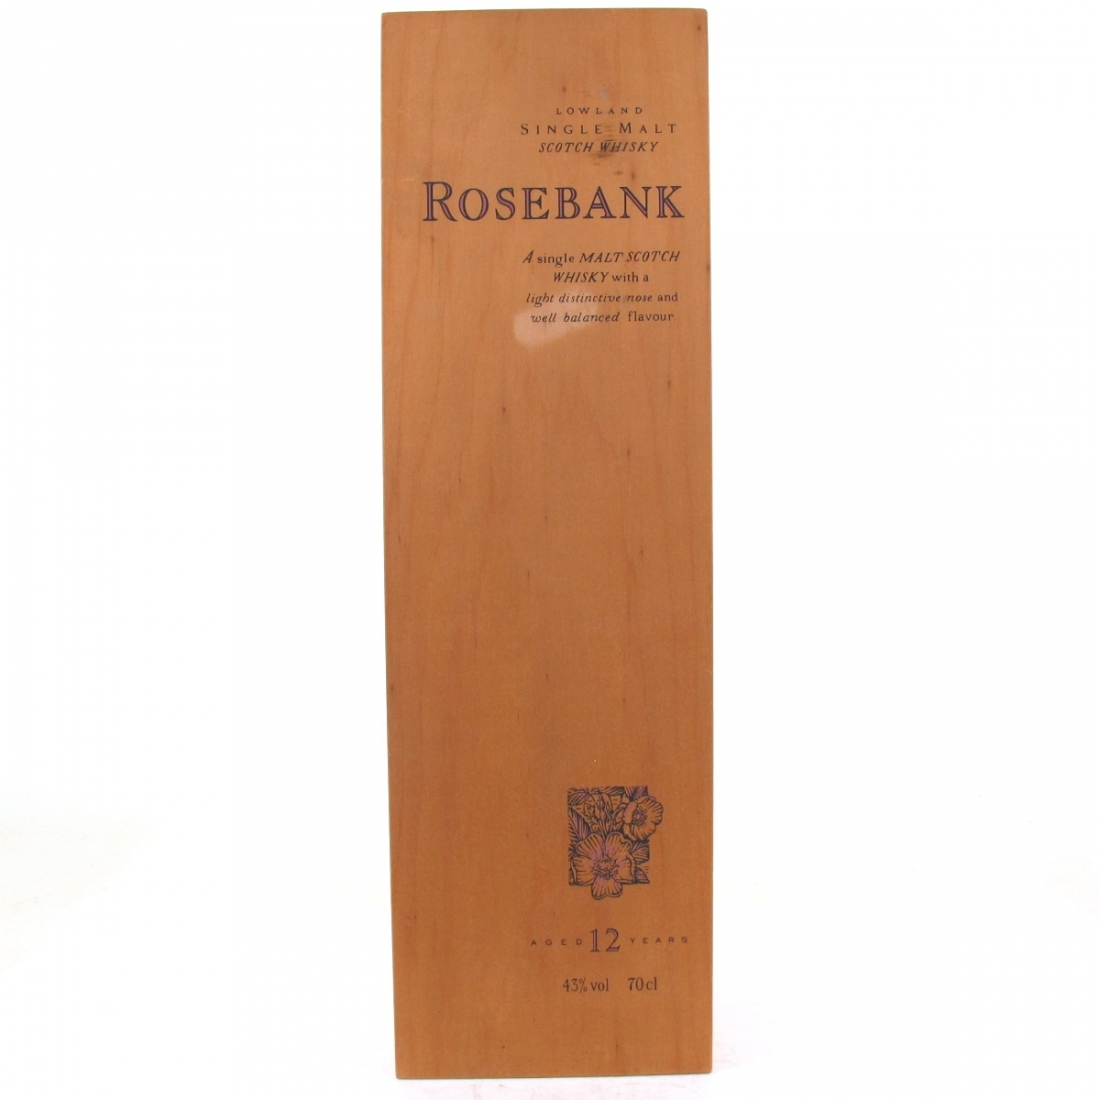 Rosebank 12 Year Old Flora and Fauna Box / Wooden Box NO BOTTLE